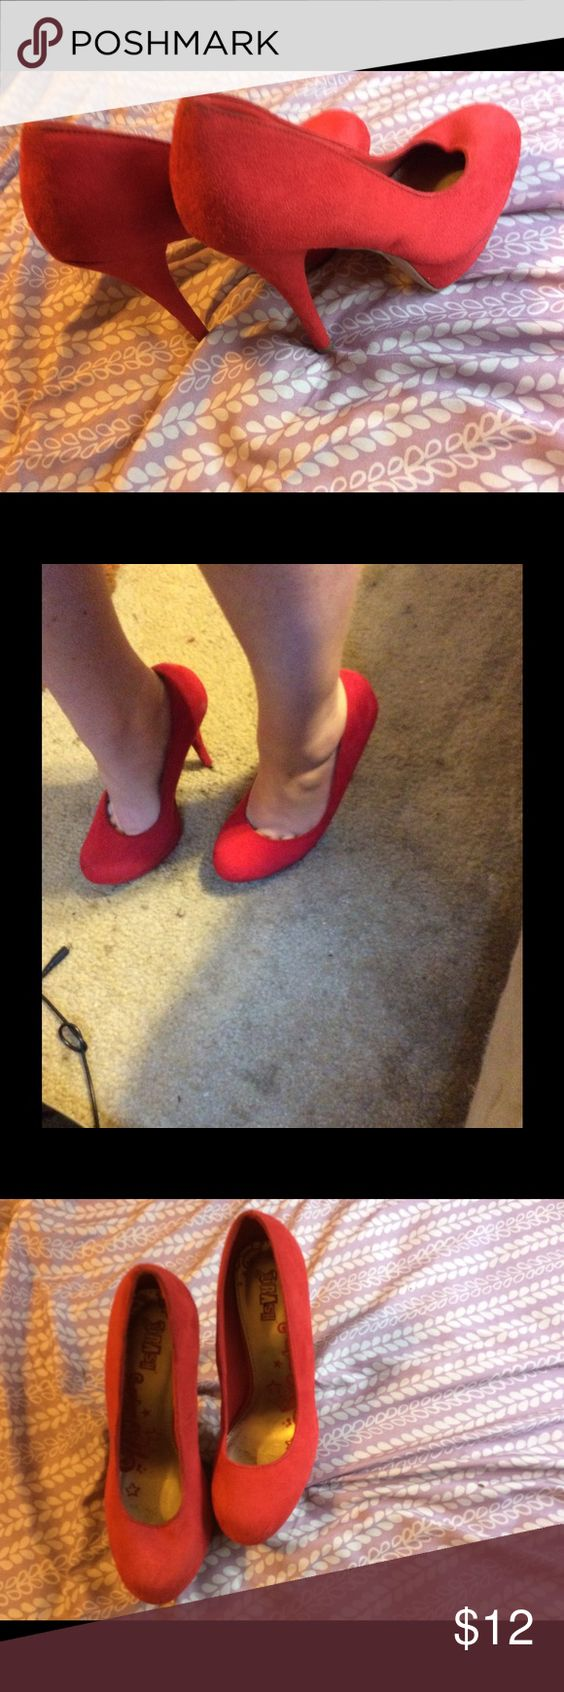 Cute Red Heels For Cheap